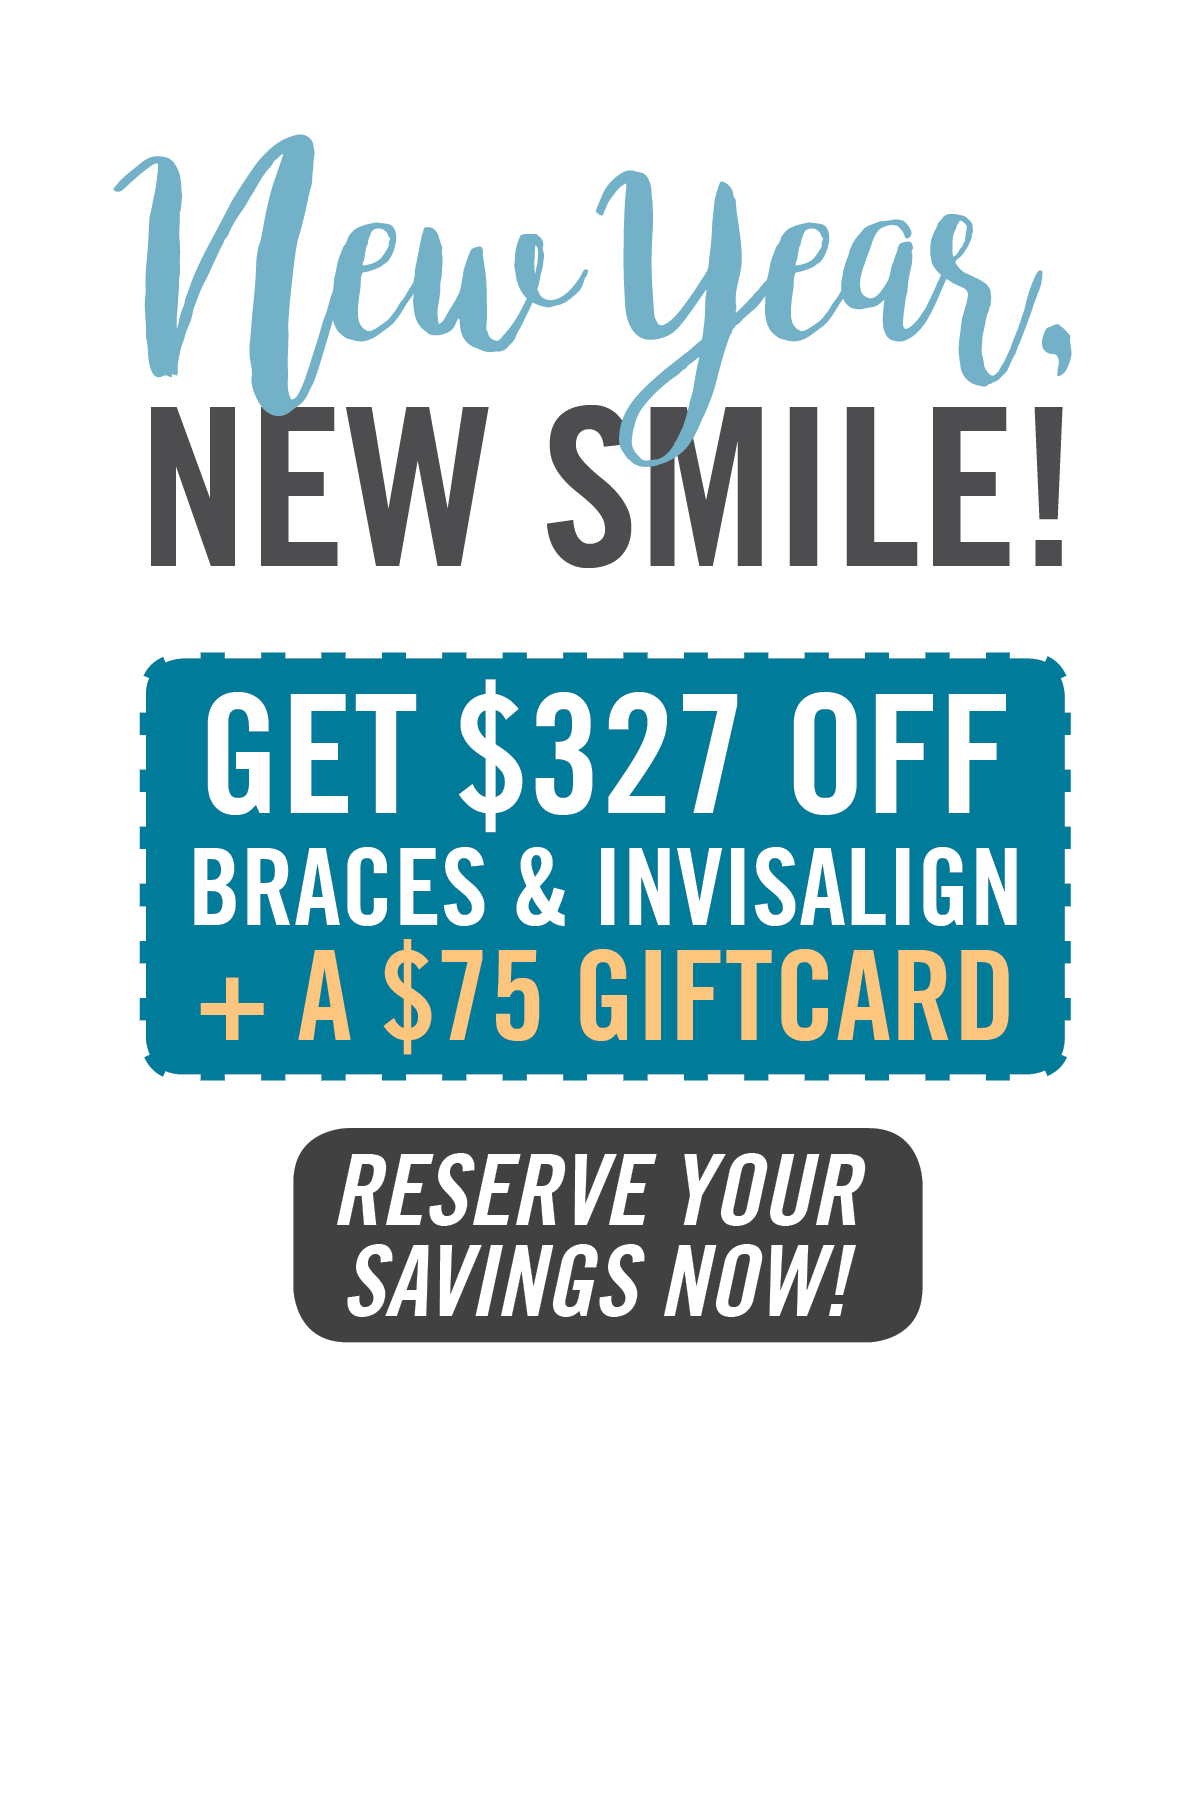 Get $327 OFF Braces & Invisalign + a $75 Gift Card